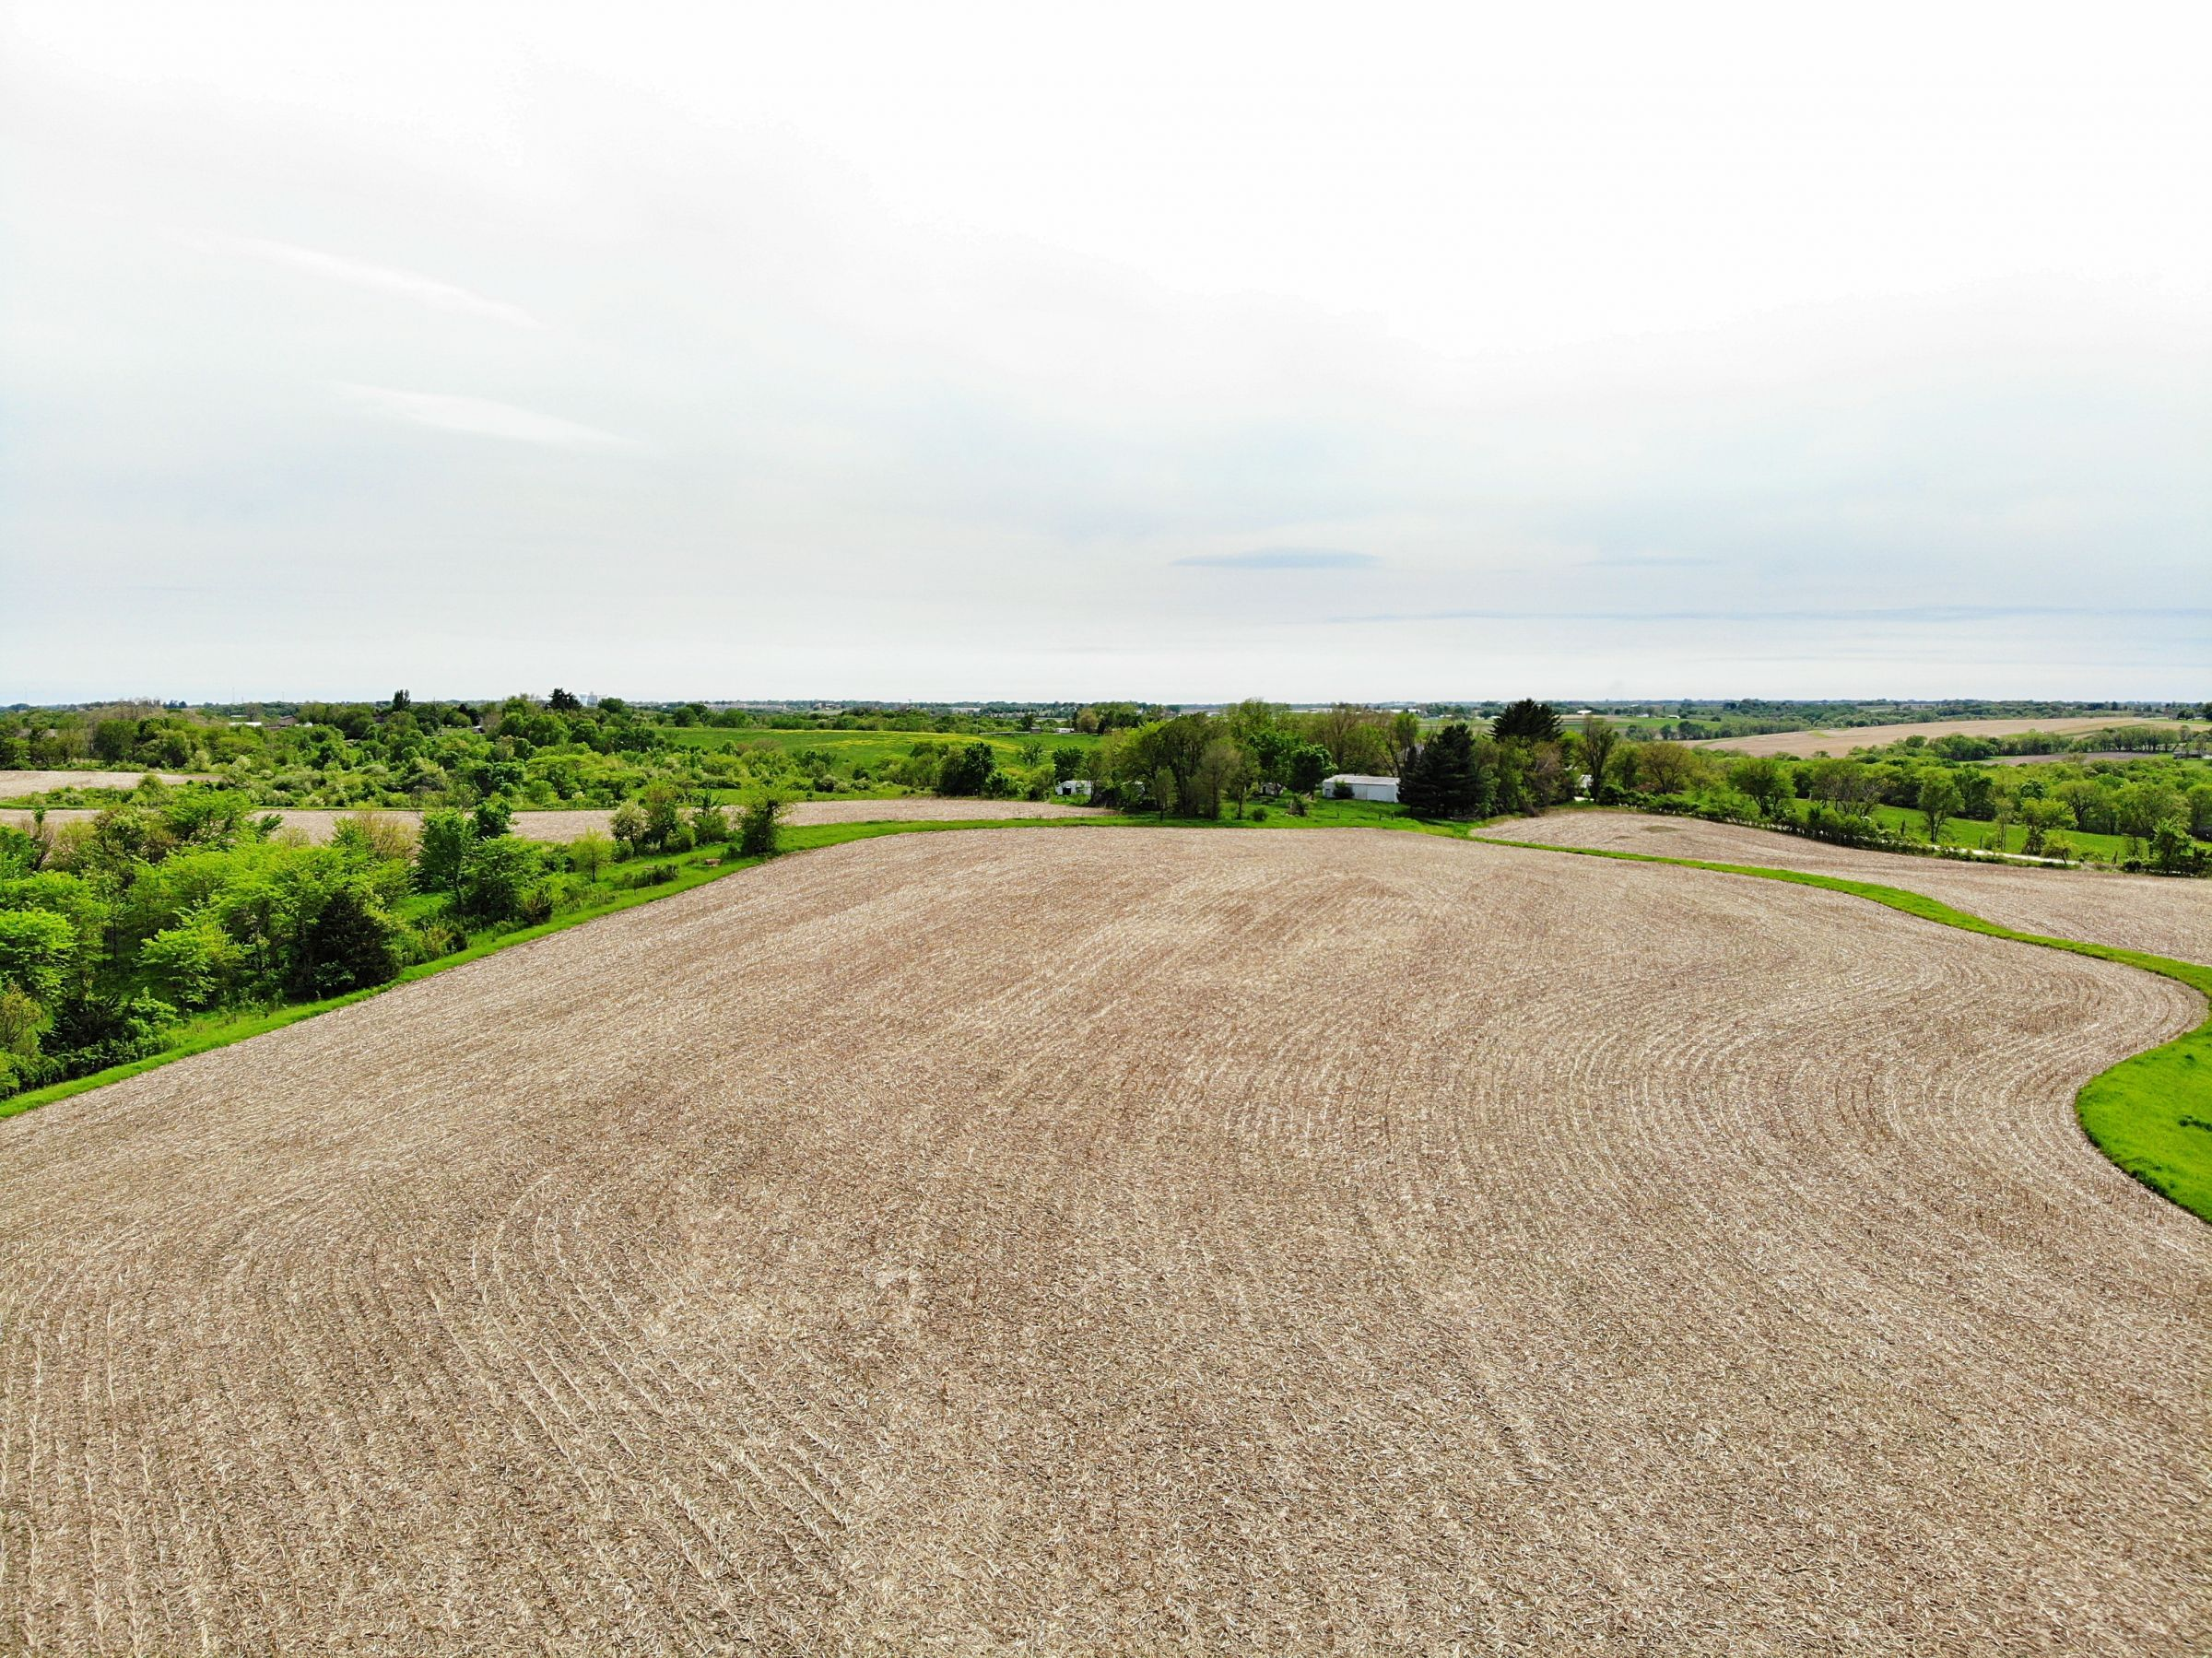 land-warren-county-iowa-41-acres-listing-number-15083-5-2020-07-22-195603.jpg